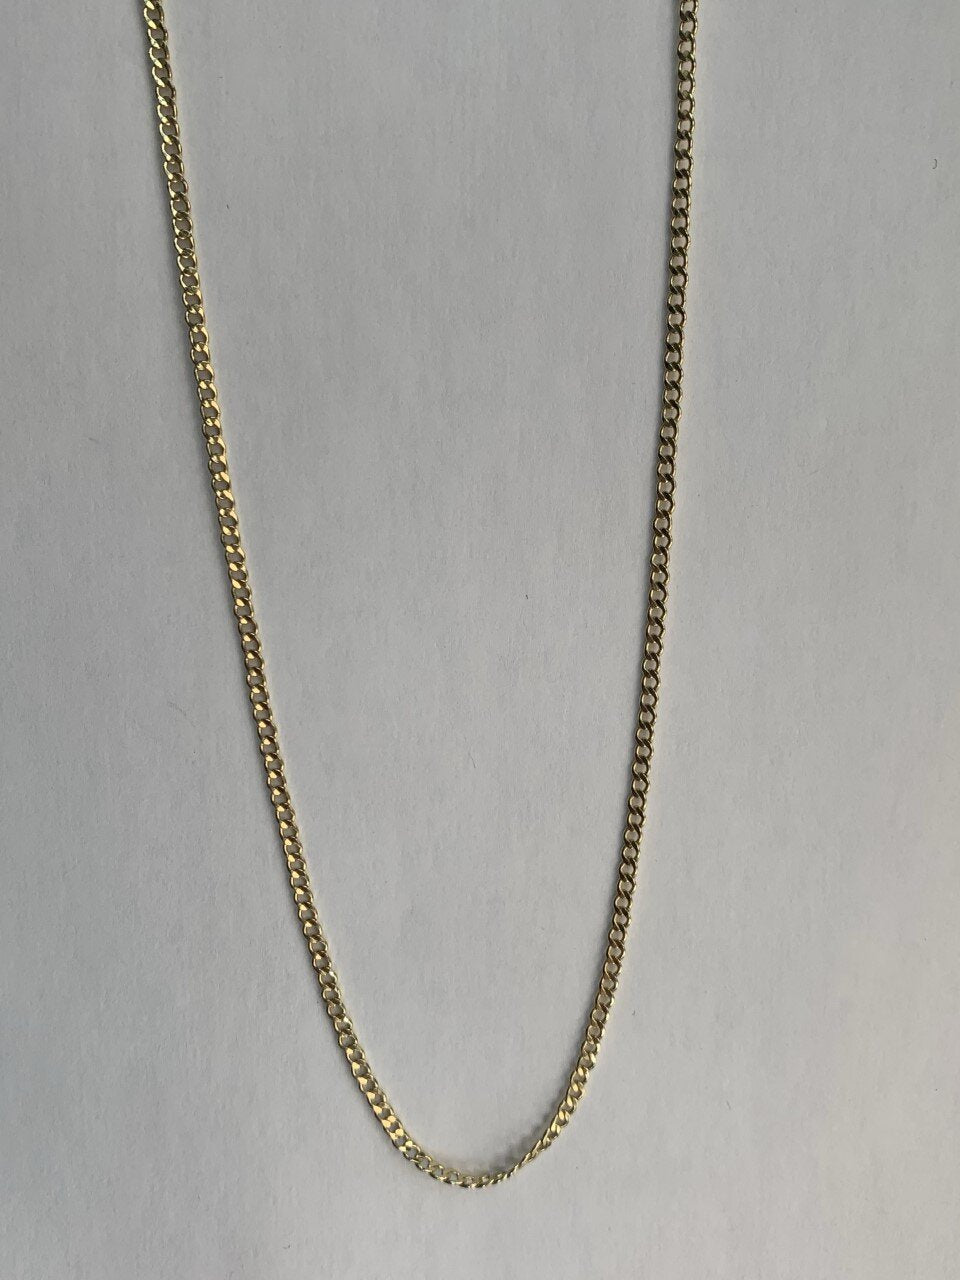 14KY Cuban link chain